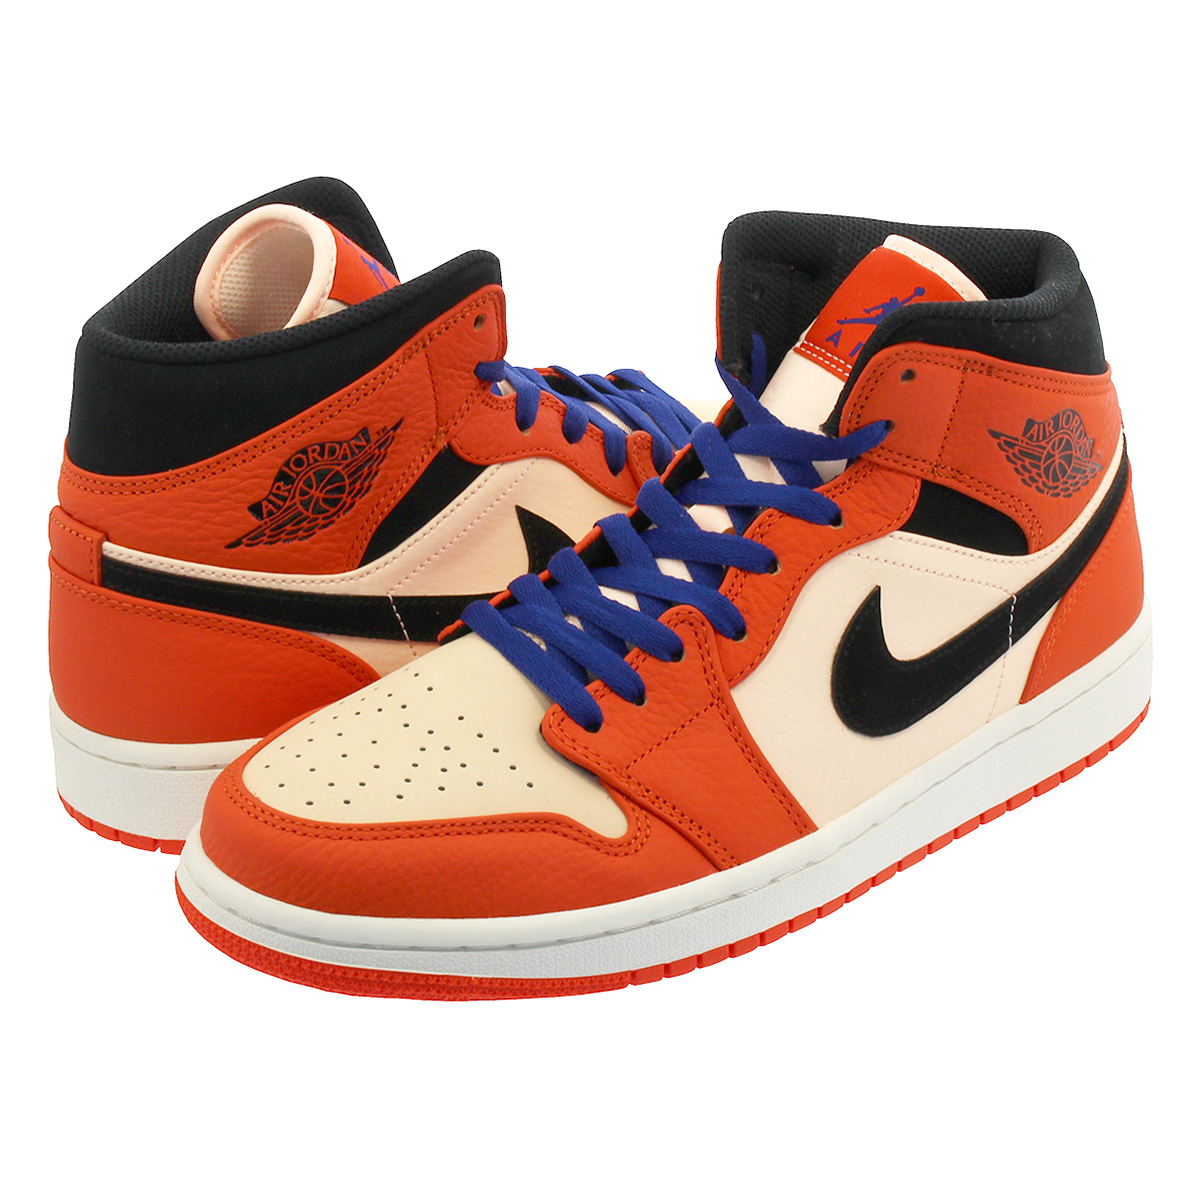 NIKE AIR JORDAN 1 MID SE Nike Air Jordan 1 mid SE TEAM ORANGE BLACK CRIMSON  TINT 852 bceeb7d14